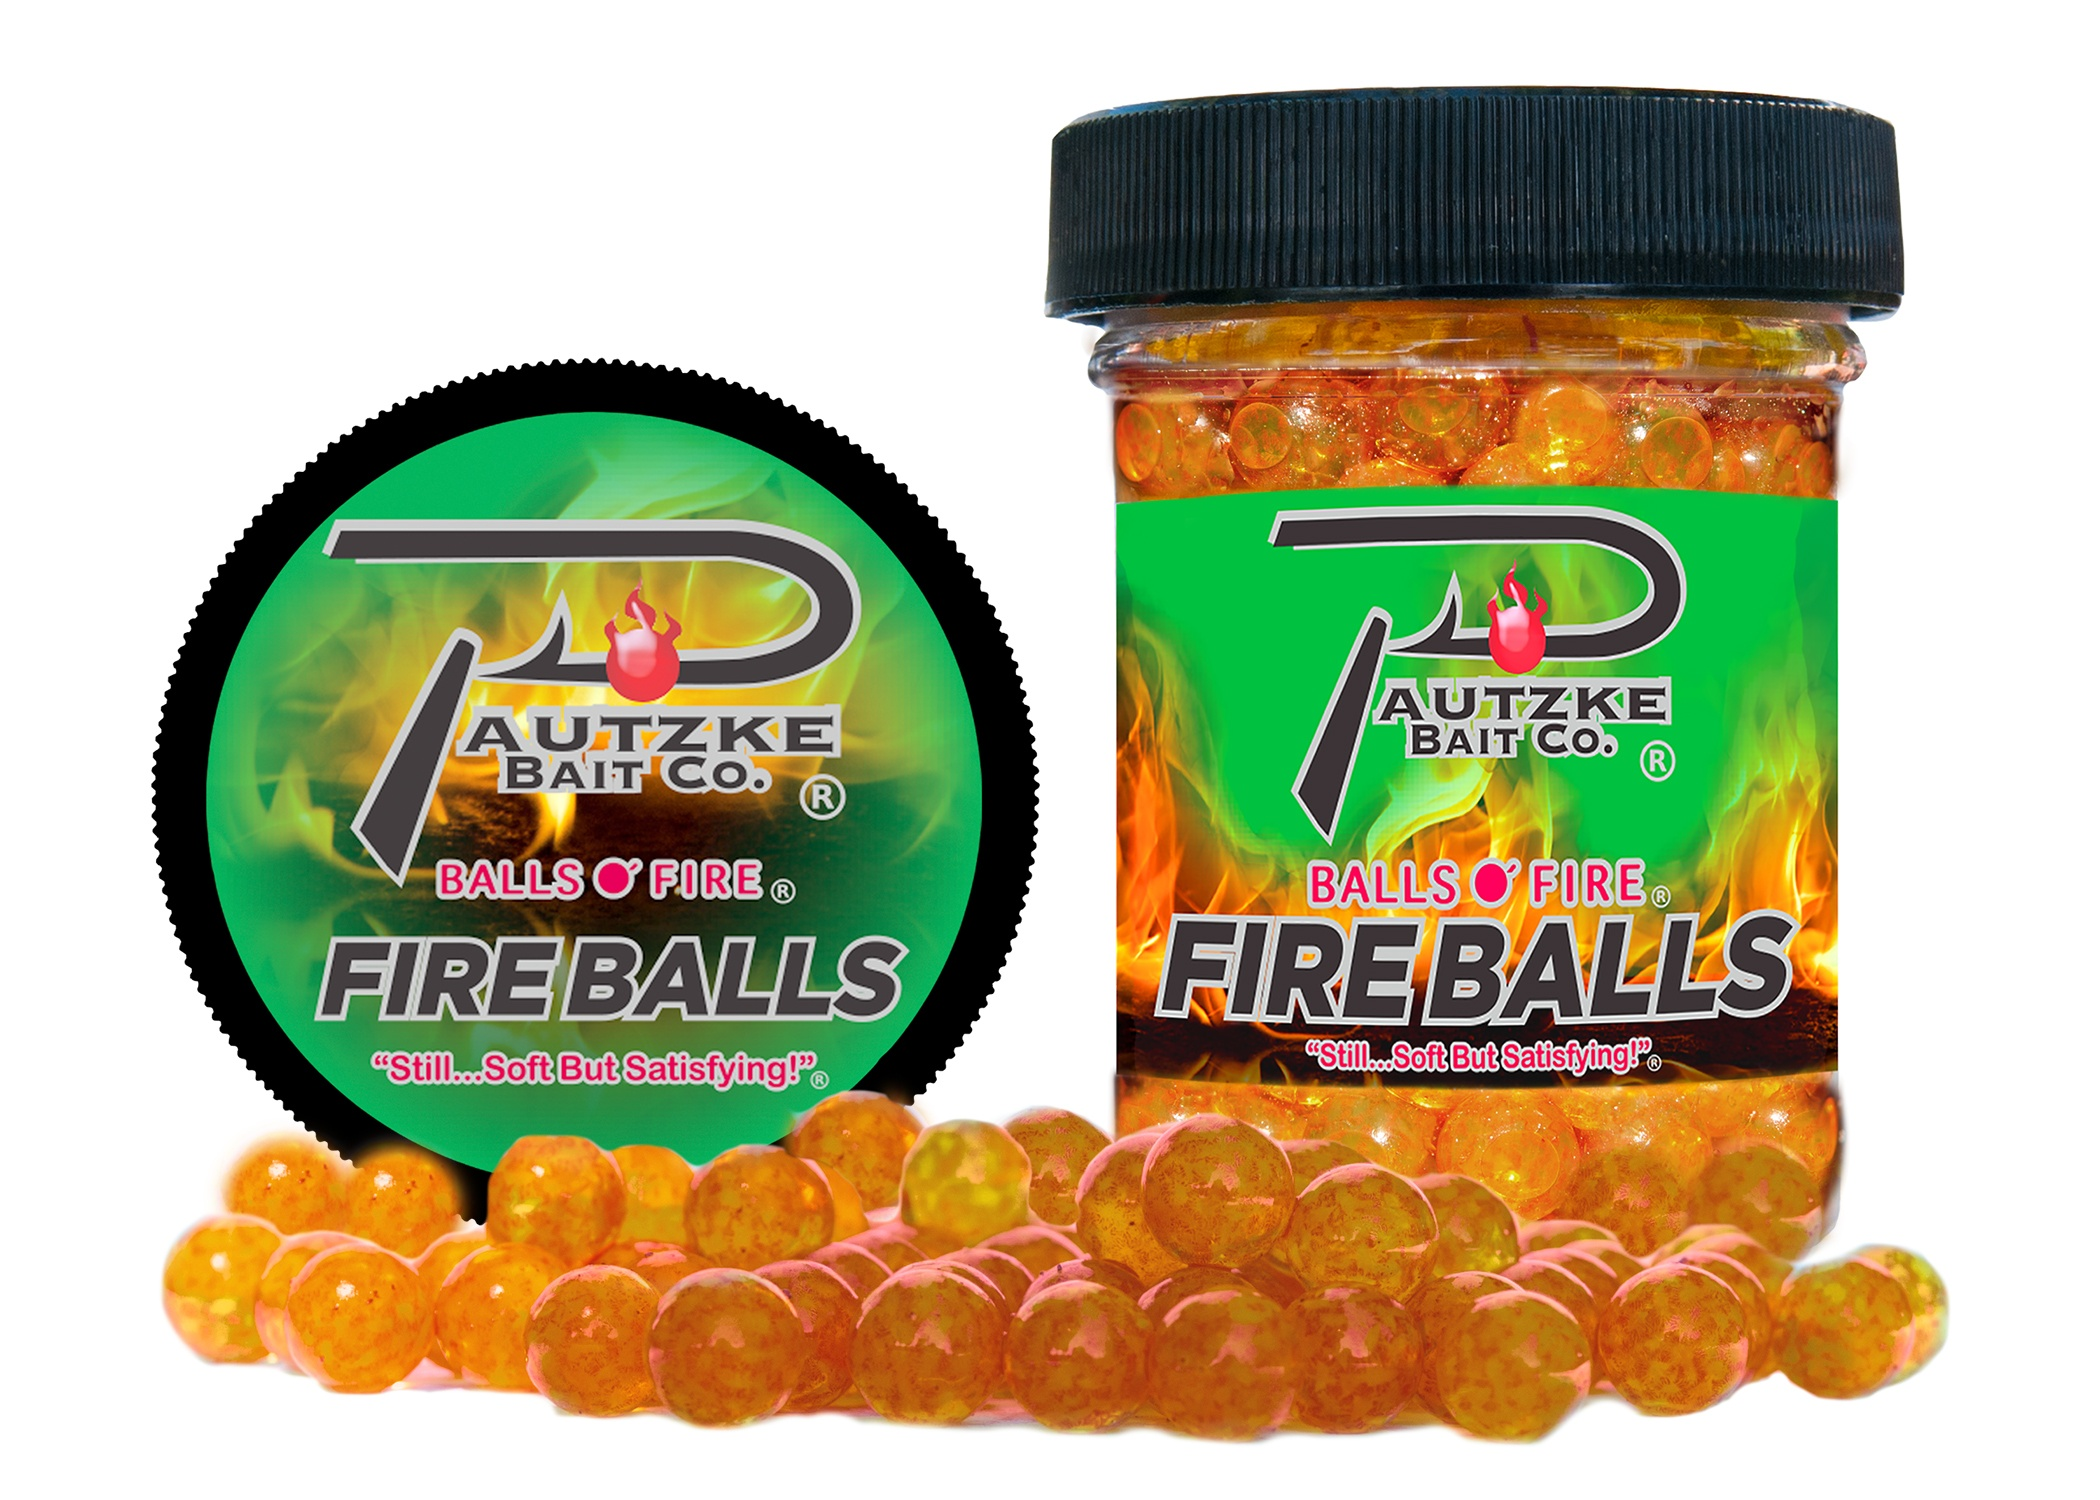 Pautzke Fire Balls - Brown Trout Image